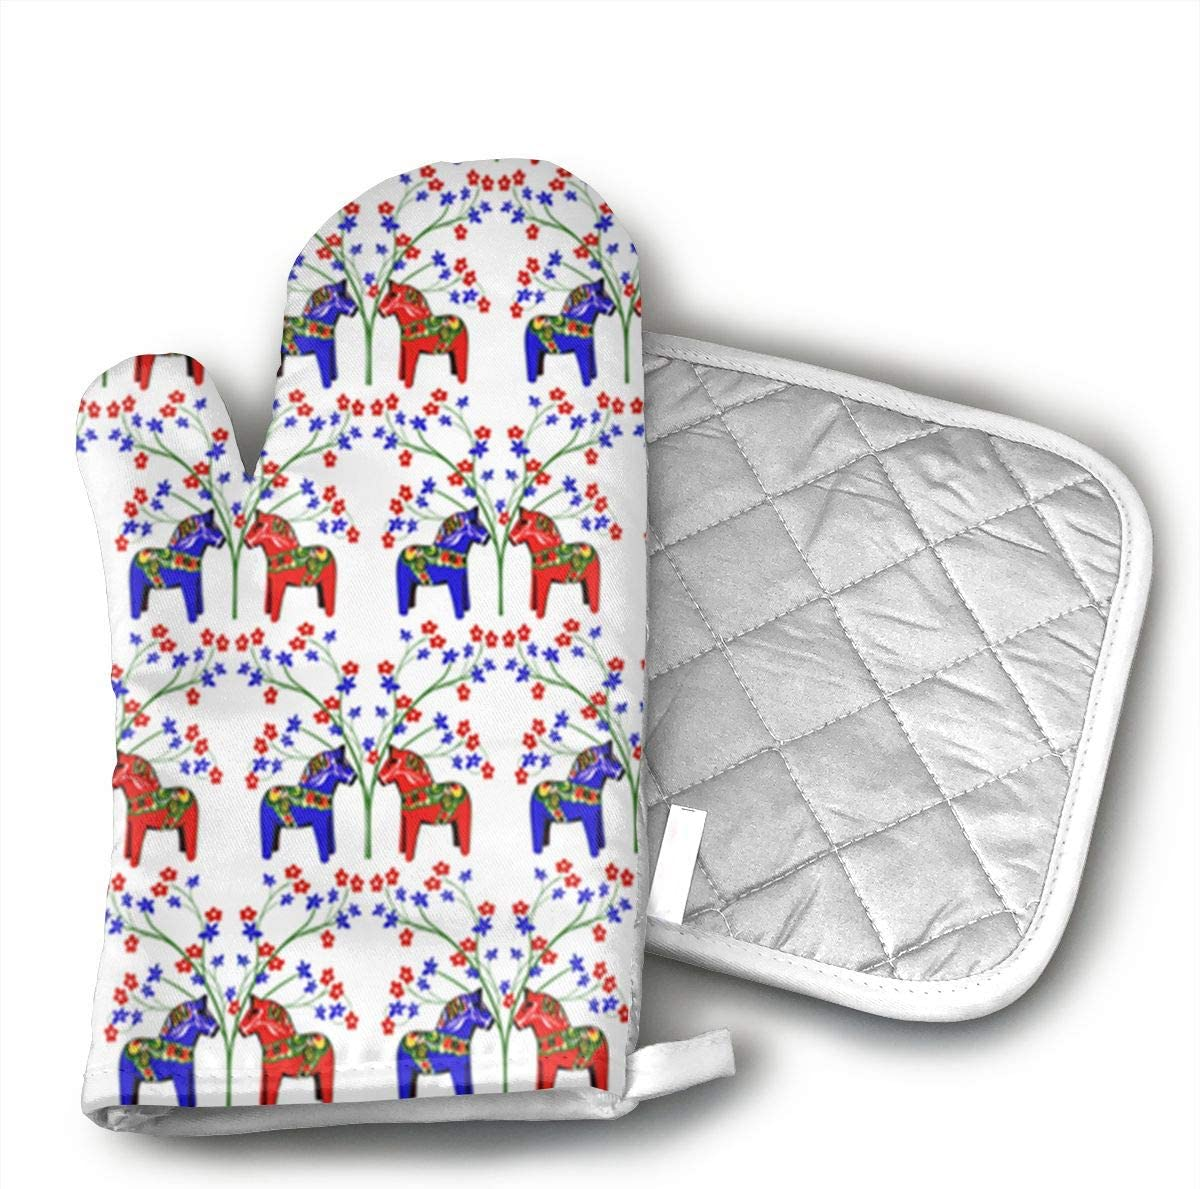 W3Zap6 Floral Swedish Dala Horses Oven Mitts BBQ Oven Gloves Baking Pot Mitts for Kitchen Cooking